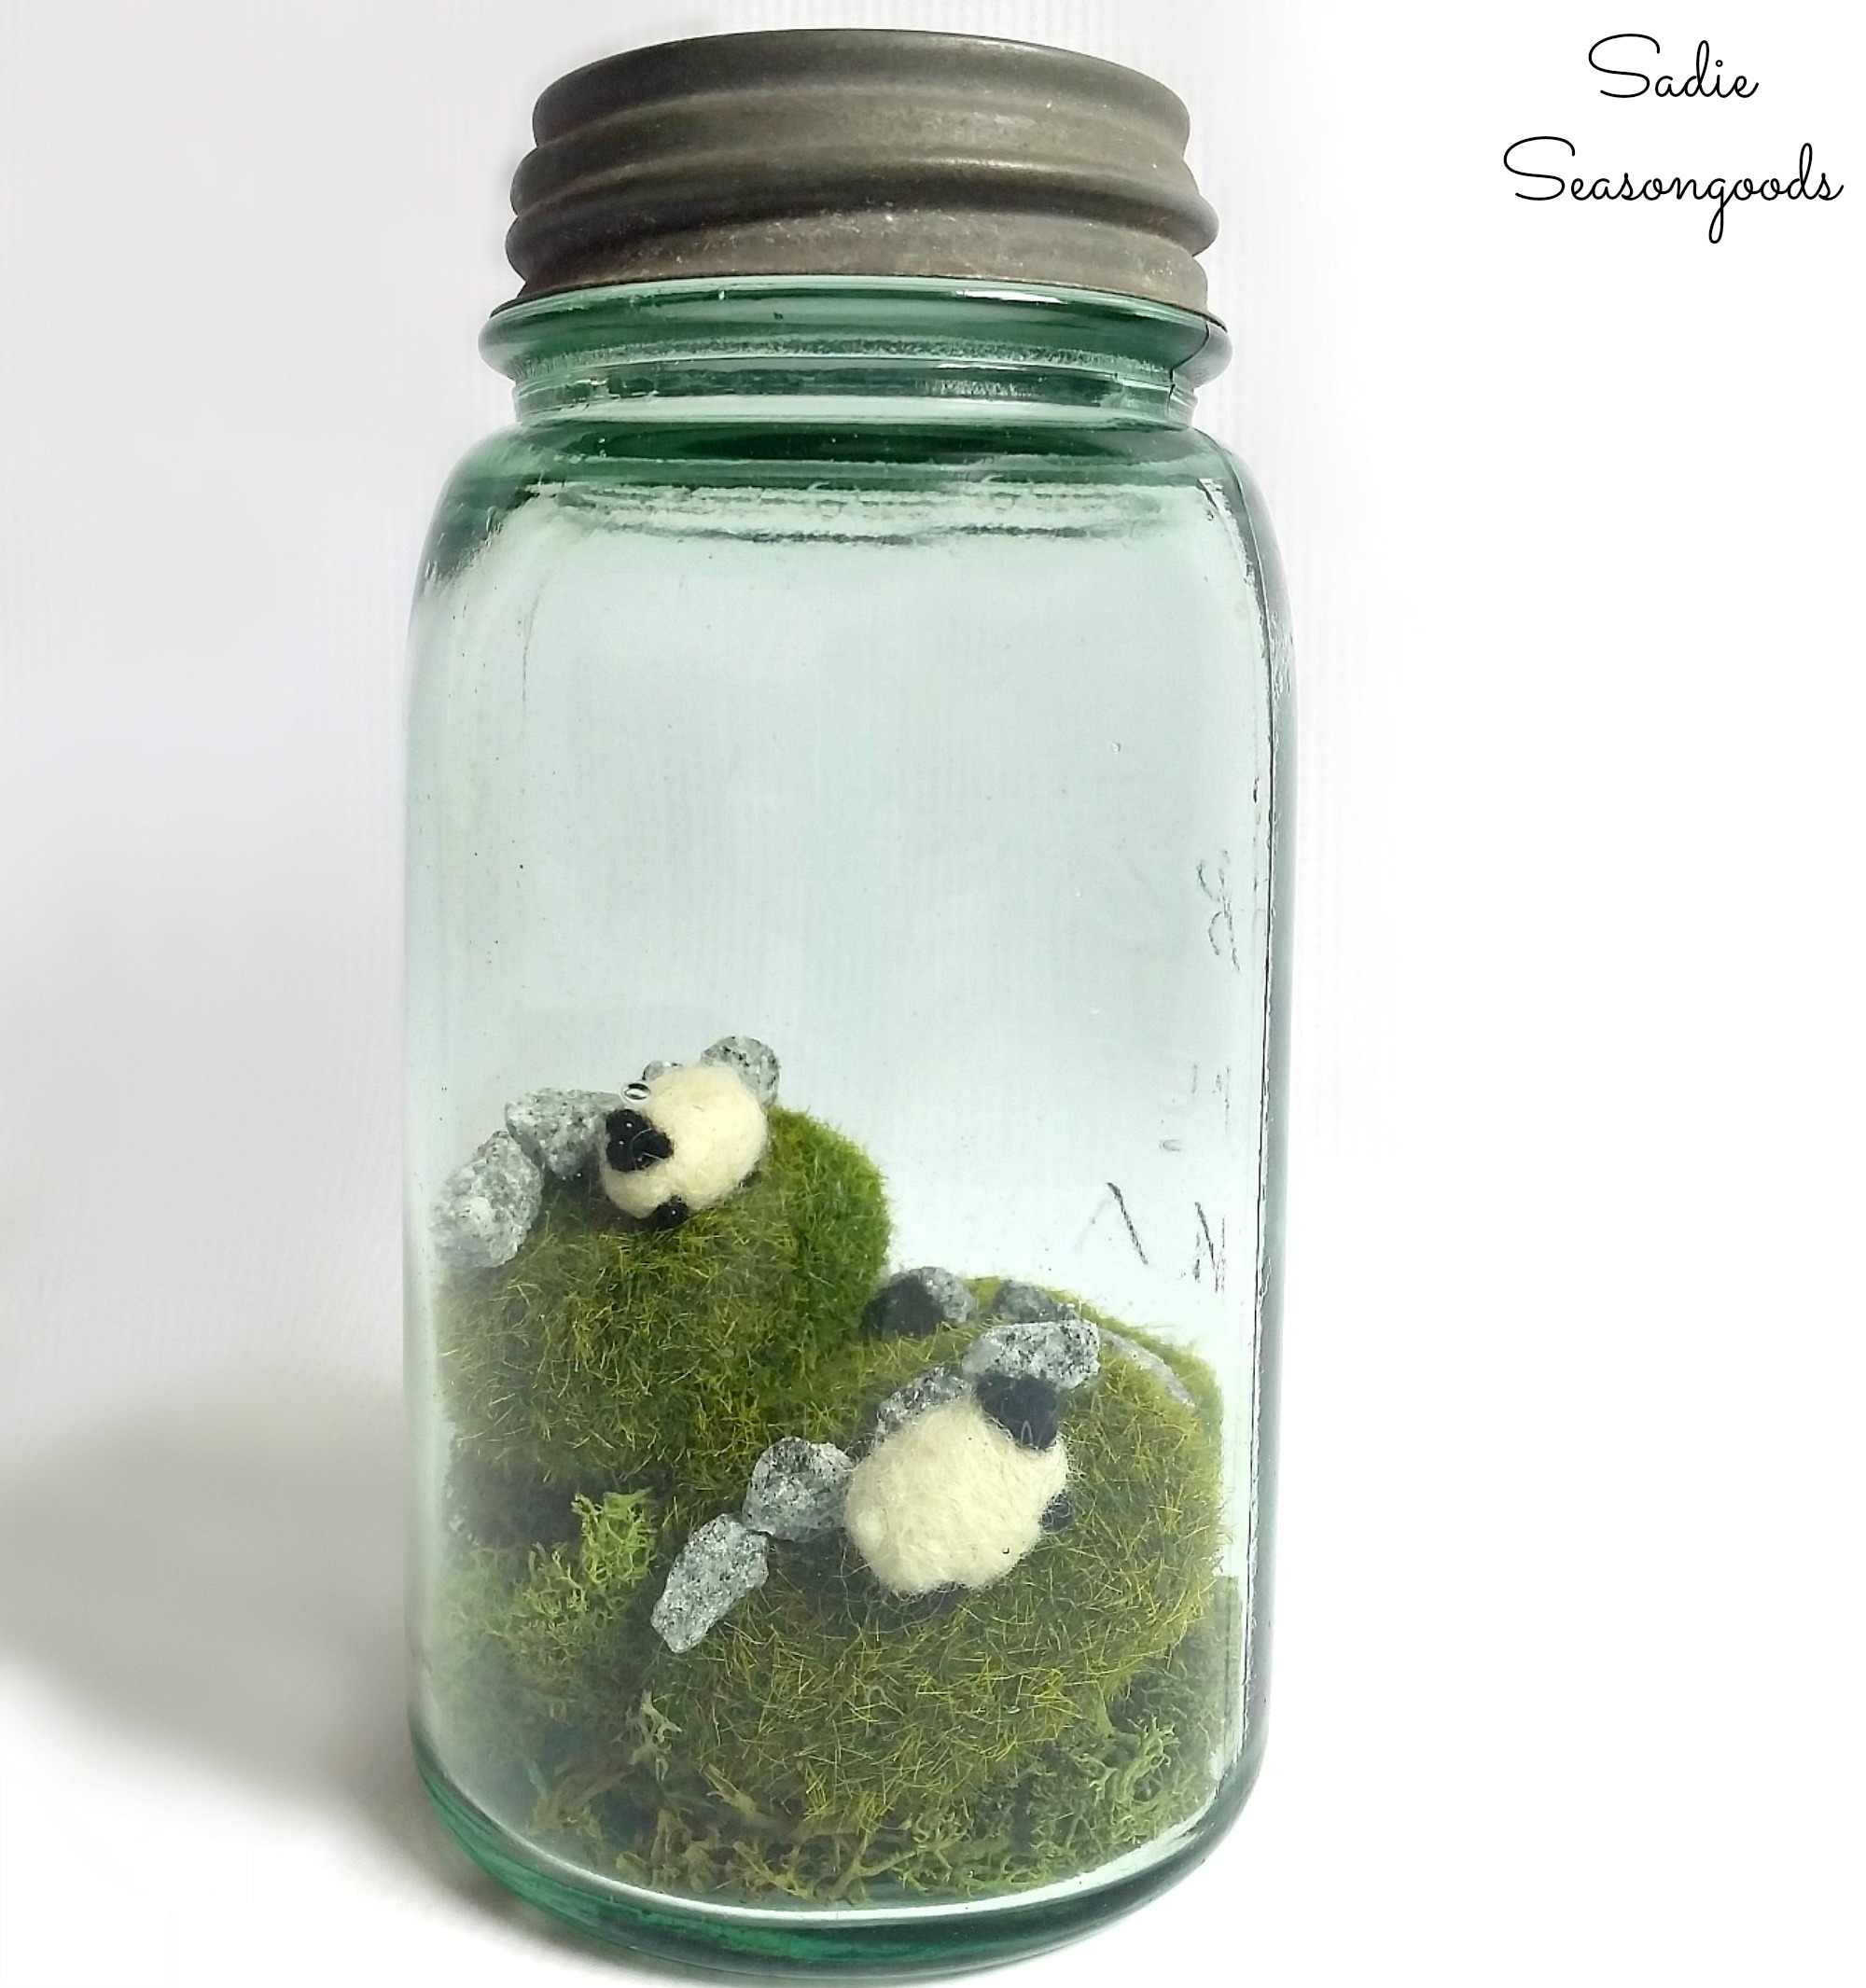 Irish Countryside in a Vintage Mason Jar for St. Patrick's Day